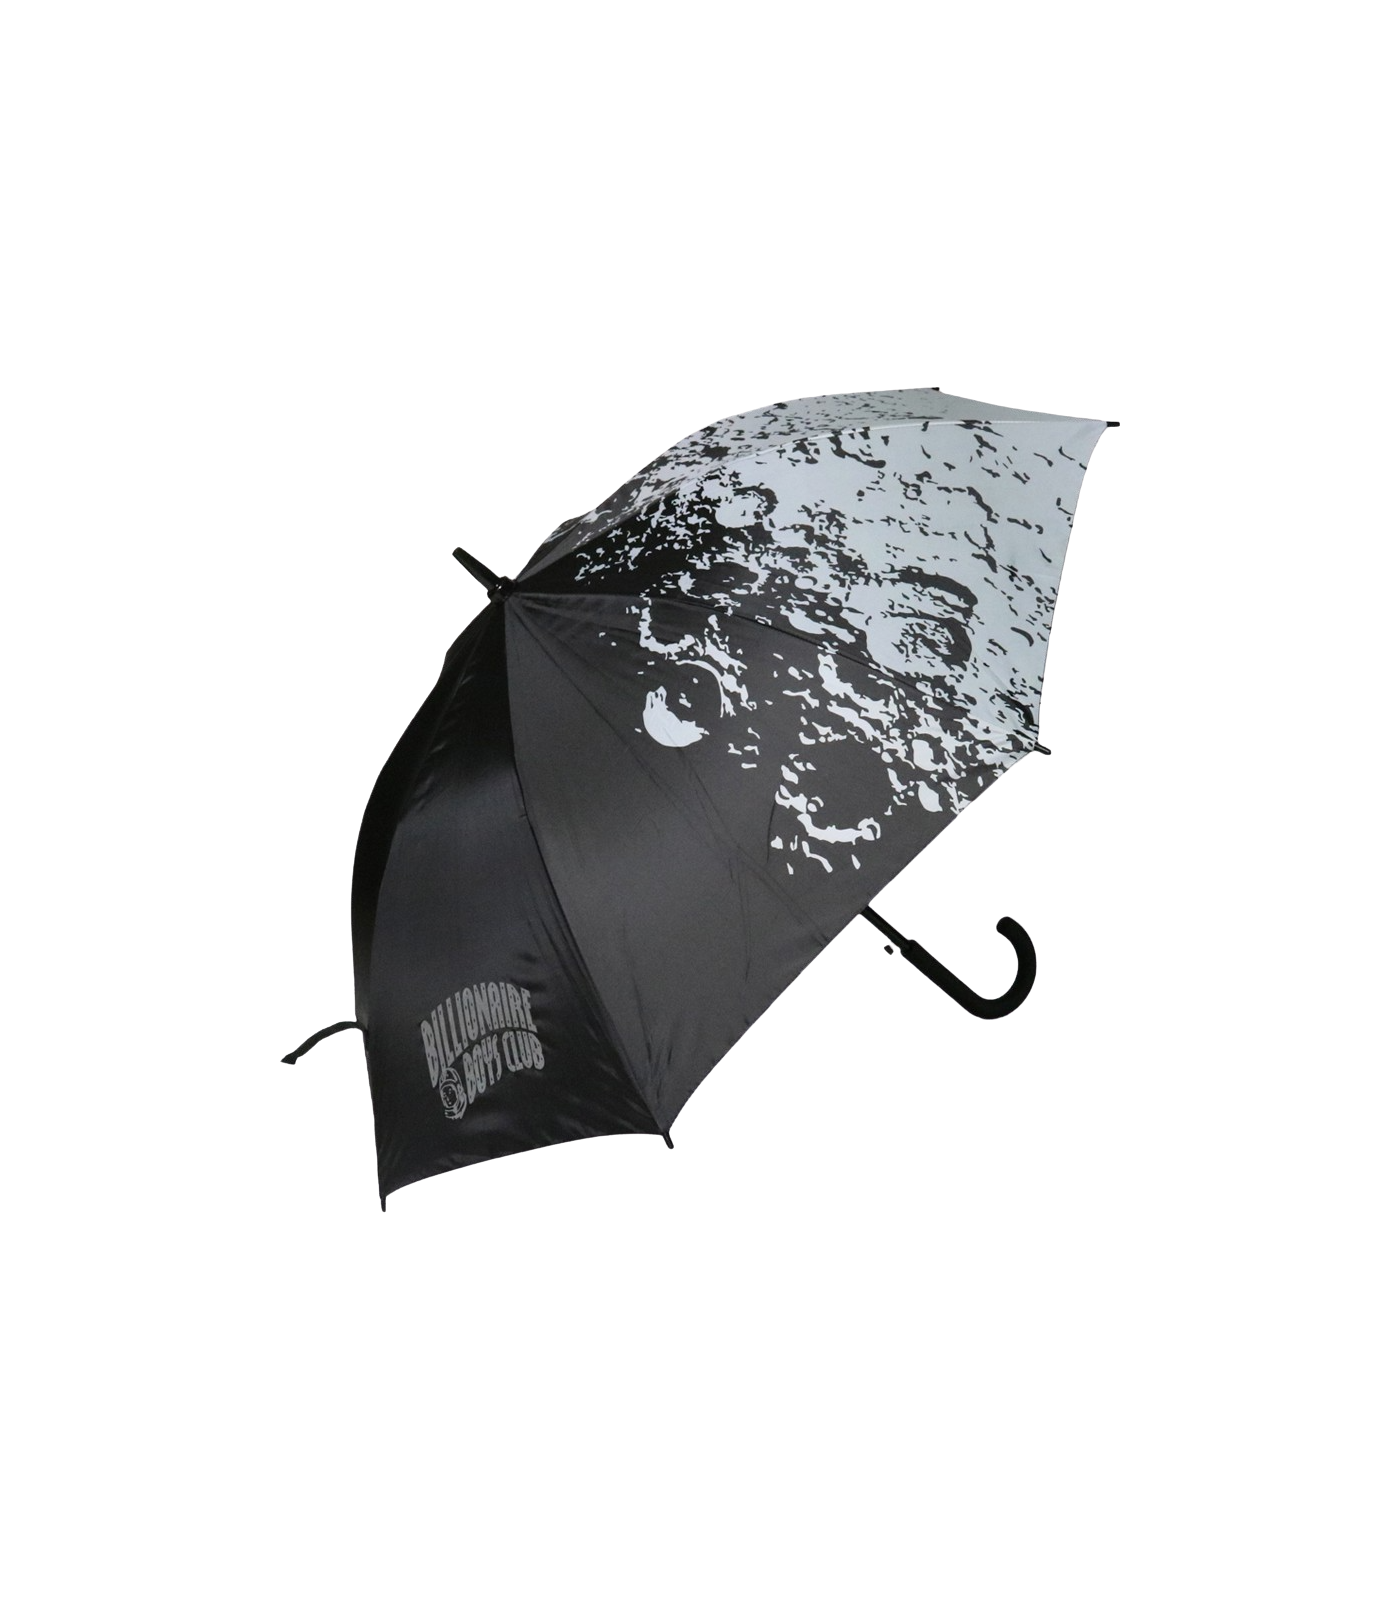 MOON PRINT ARCH LOGO UMBRELLA